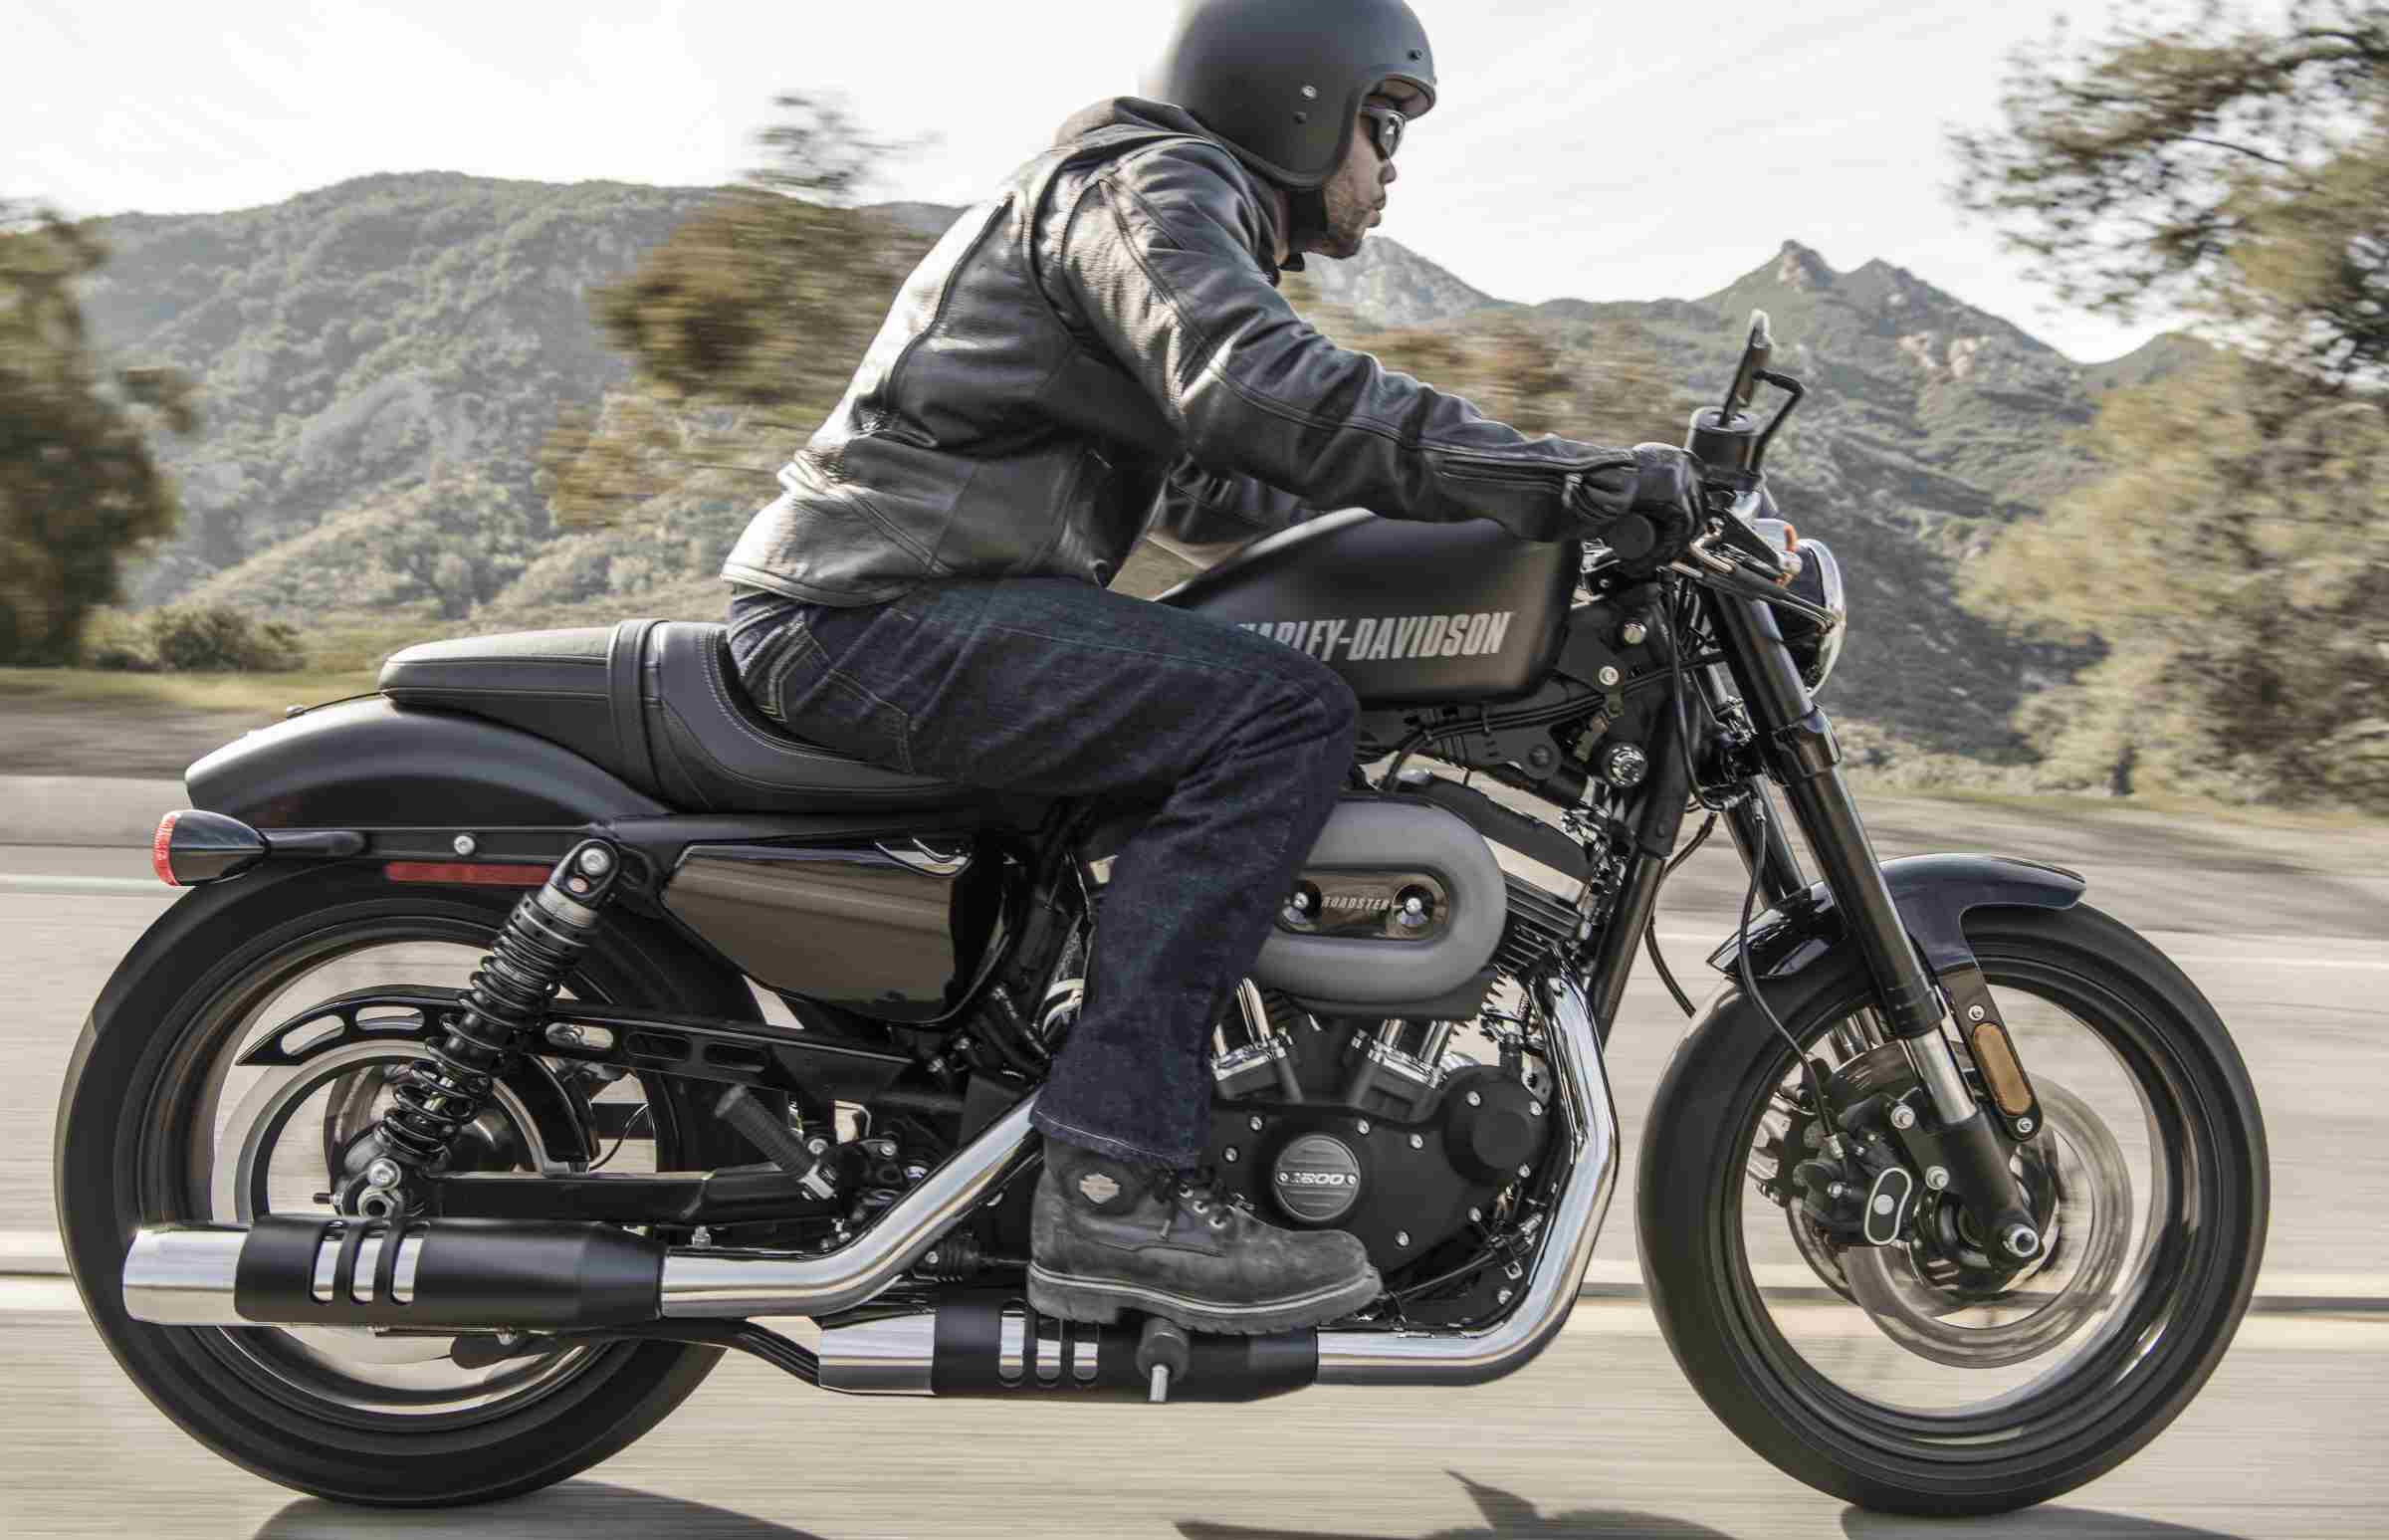 5 Reasons The New Harley Davidson Roadster Will Reinvent Sportster Engine Cooling Diagram 2016